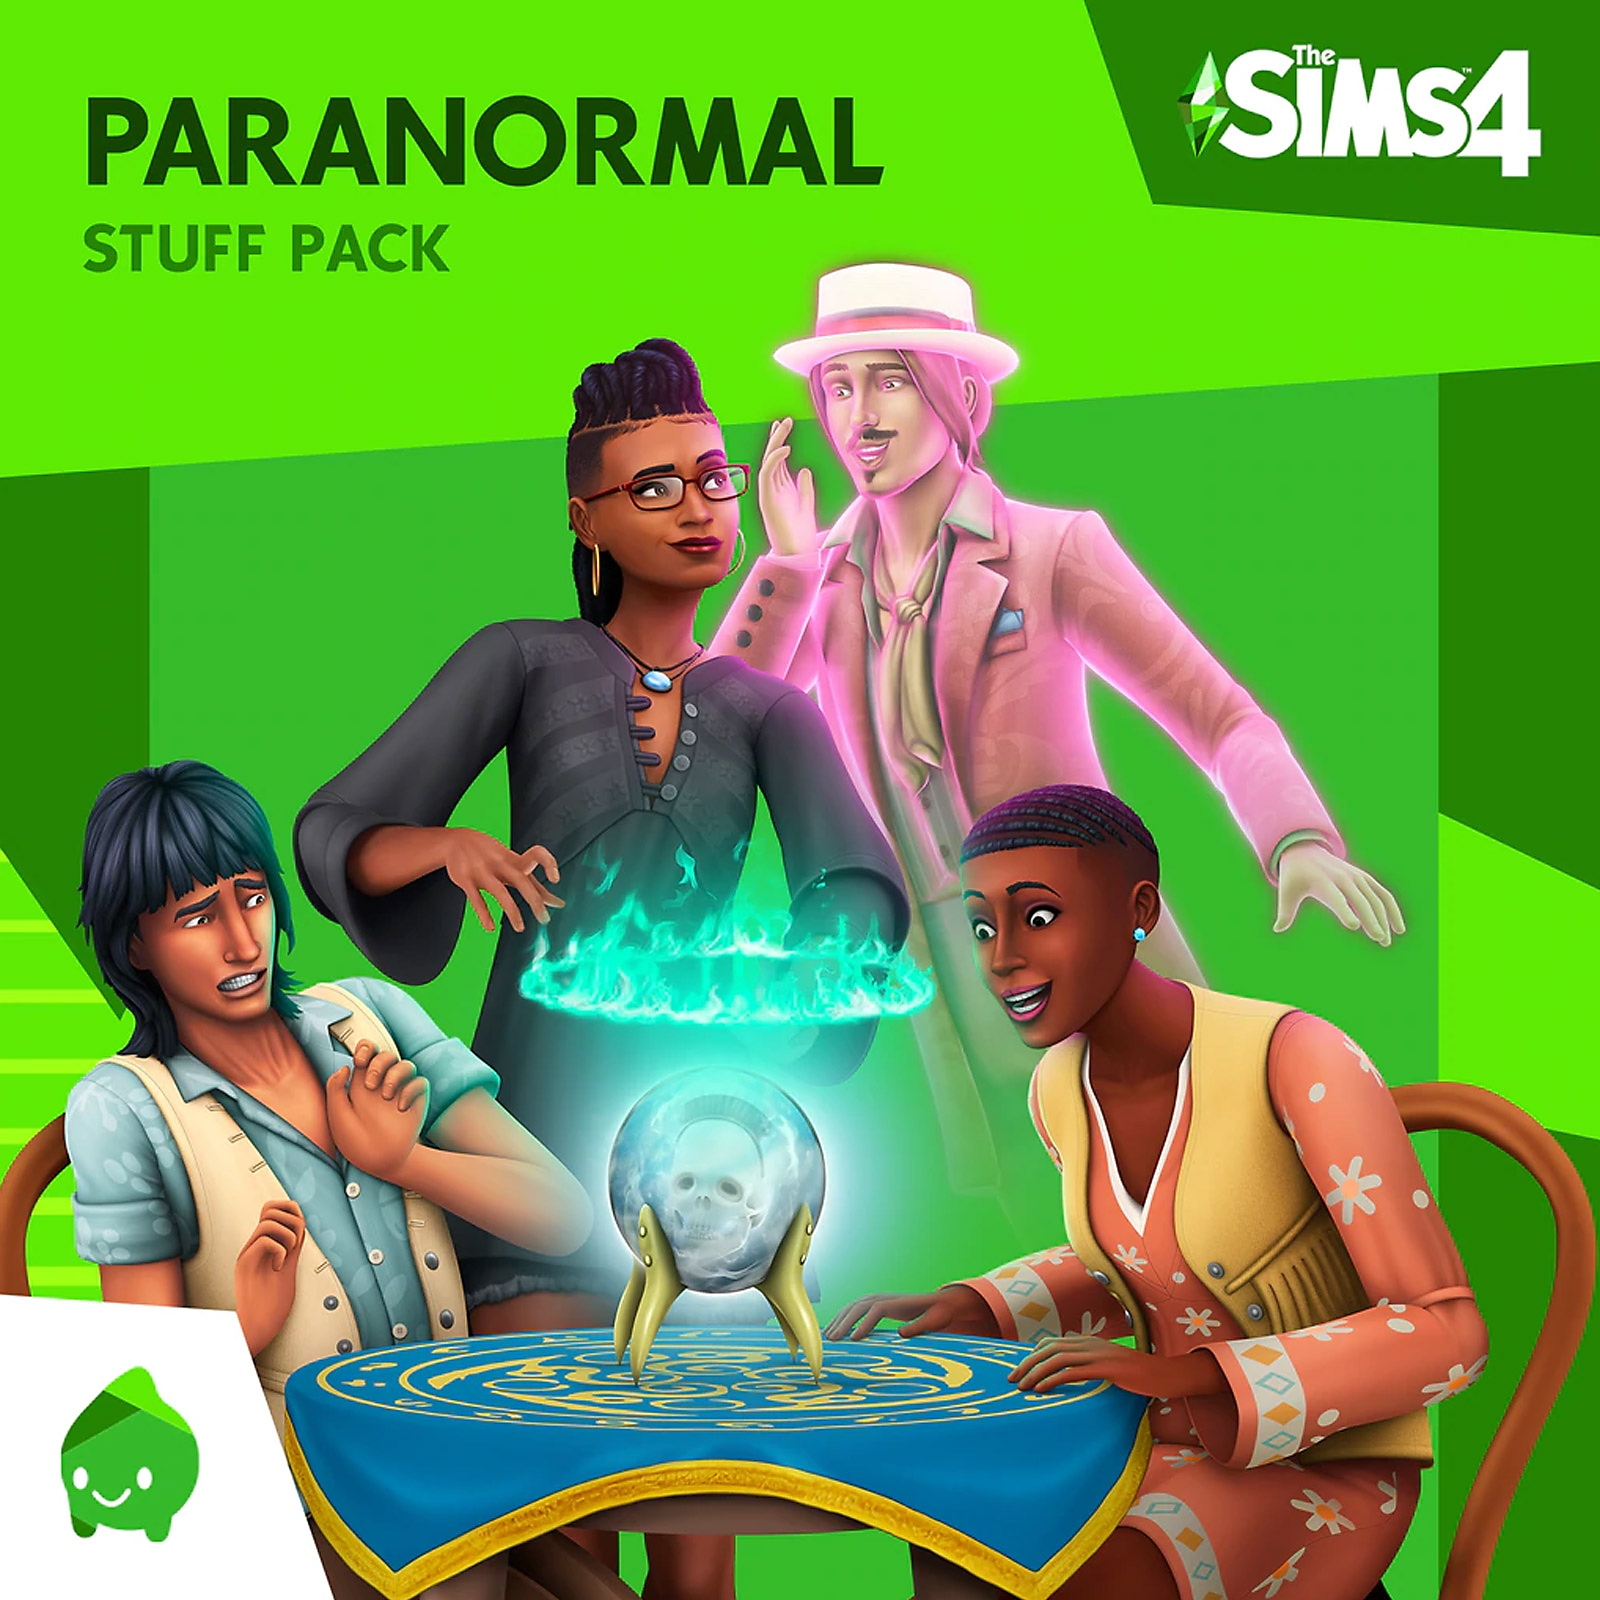 Paranormal Stuff Pack